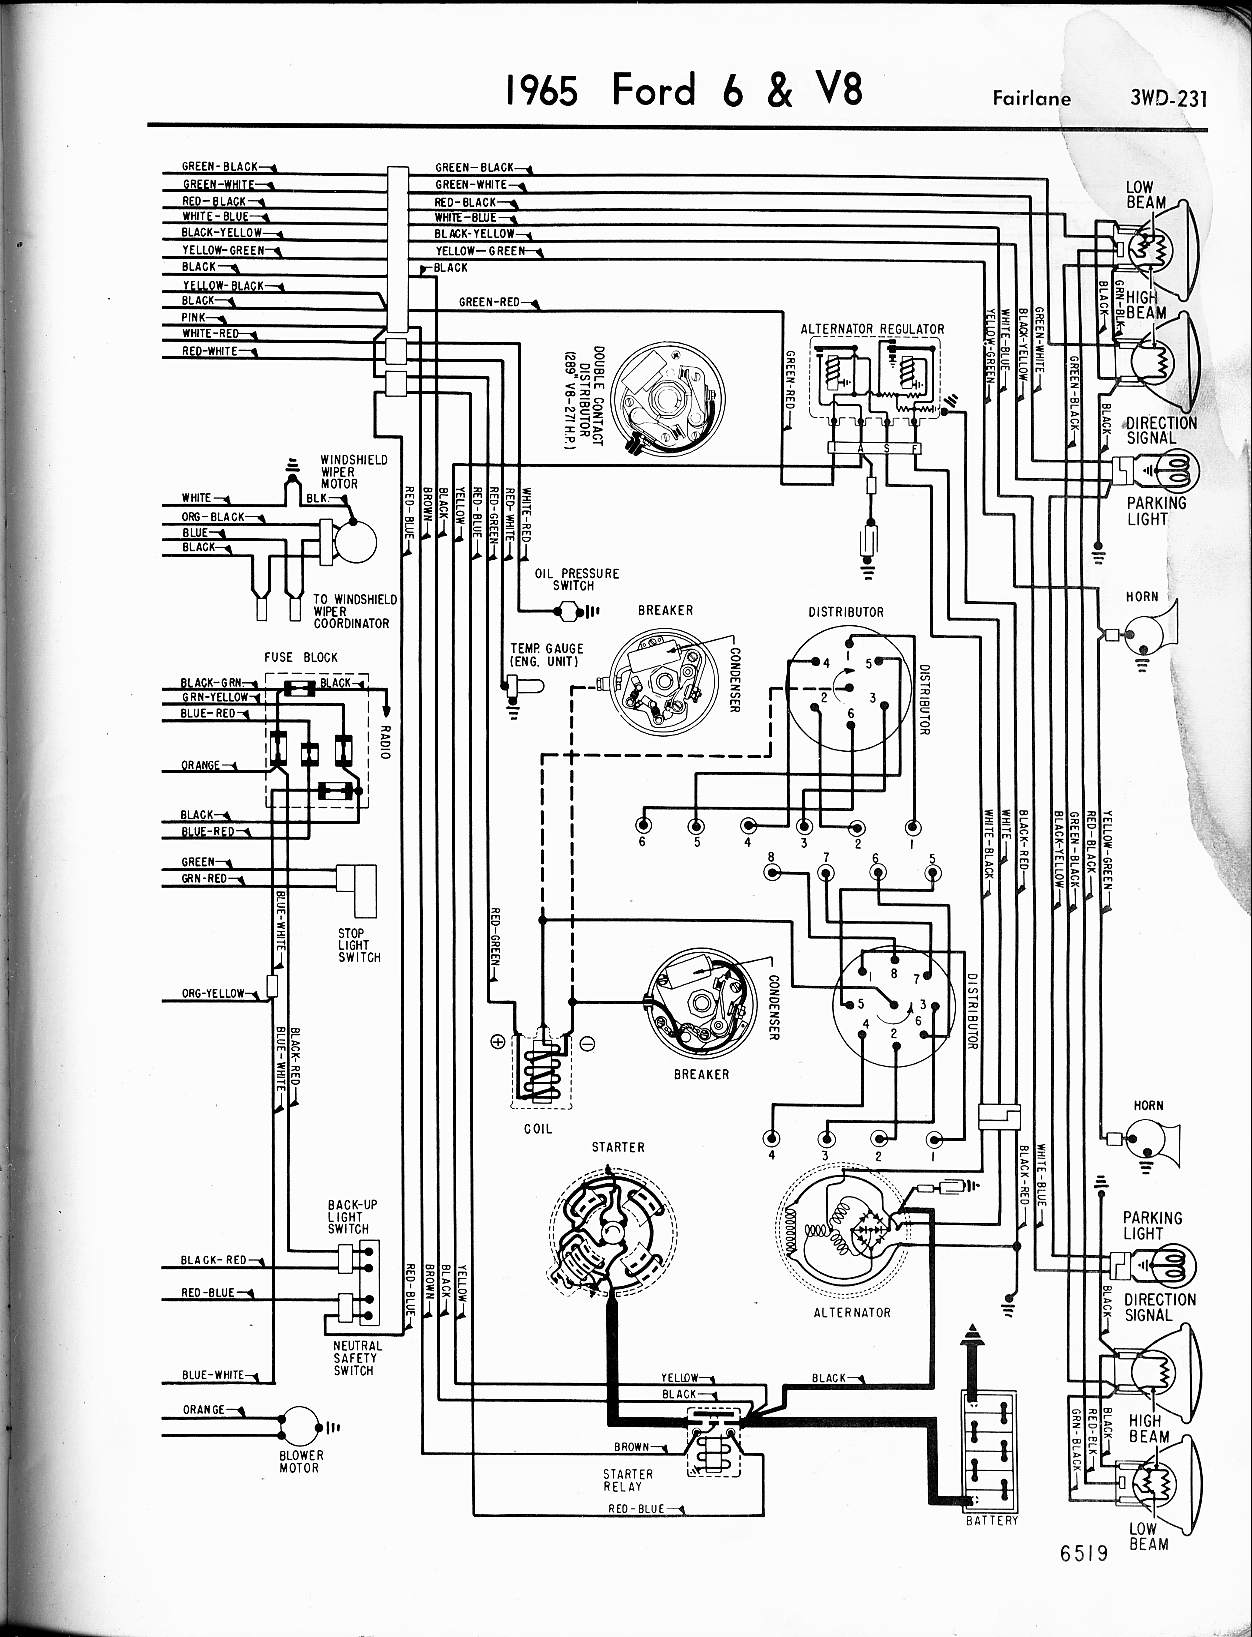 1966 Gto Wiper Wiring Diagram Schematics Diagrams 1964 Pontiac 57 65 Ford Judge 66